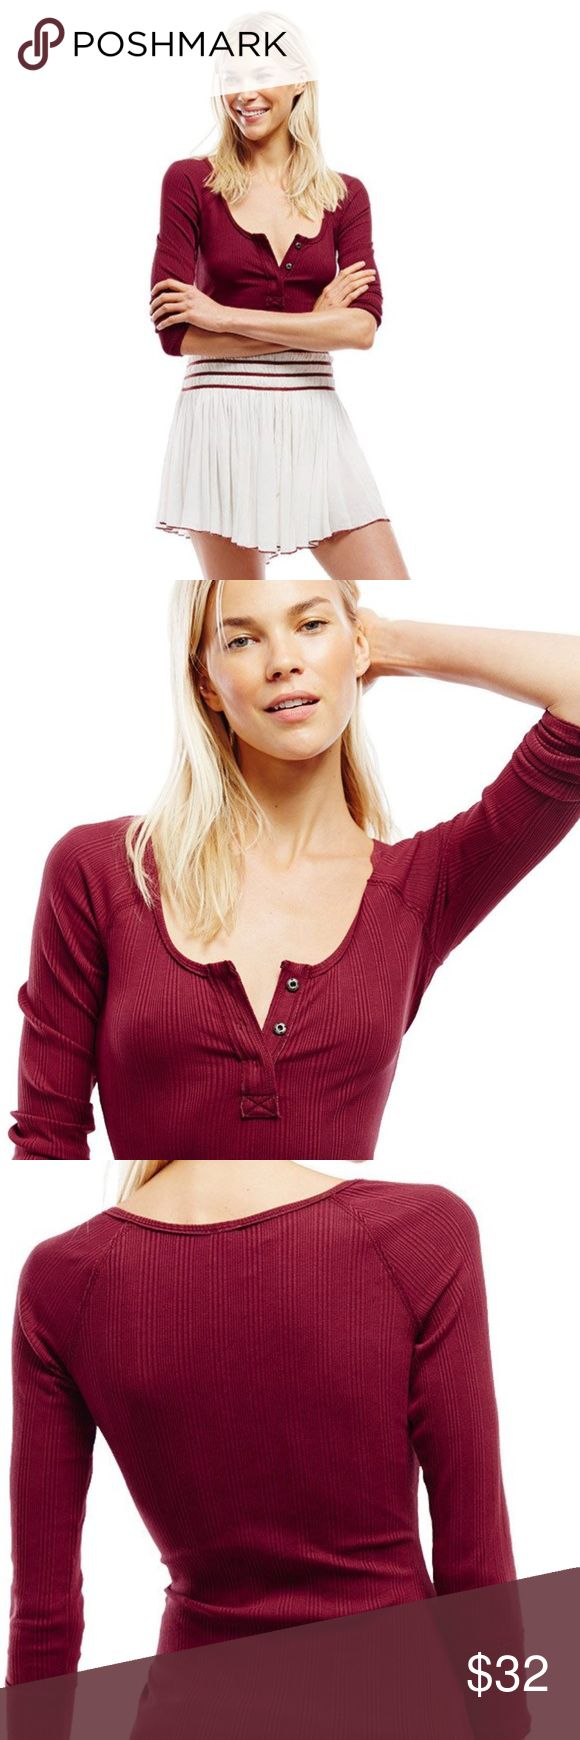 """Free People """"Jill"""" Henley Top Free People stretchy rib classic henley features hidden snap closures on the placket and a low scoop neckline. Three-quarter length sleeves and exposed trim detailing. 95% Cotton 5% Spandex Free People Tops"""